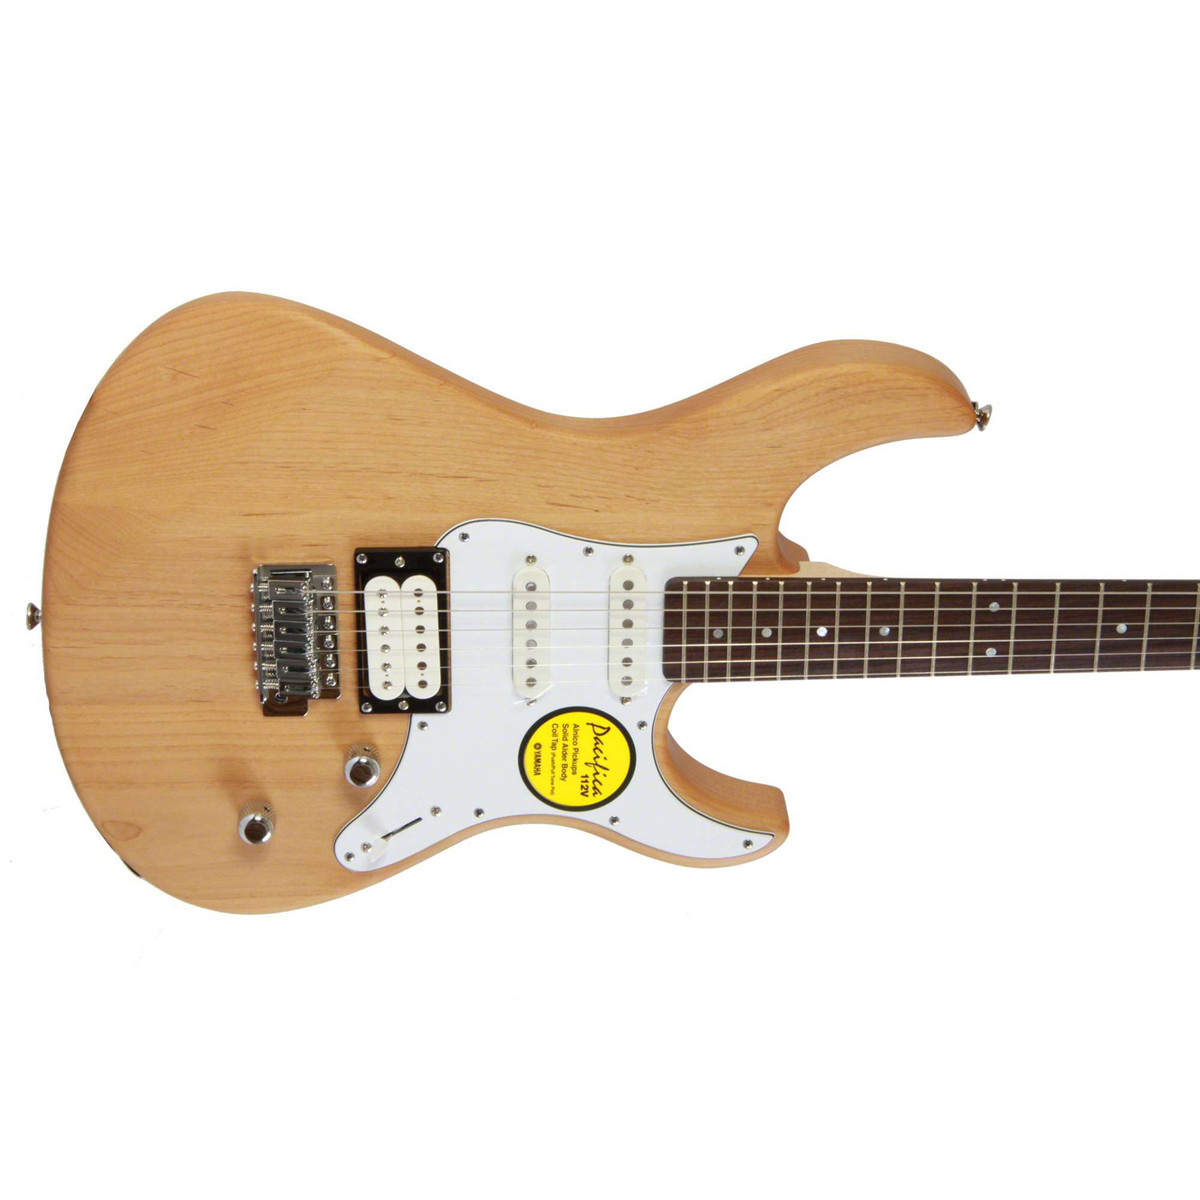 yamaha pacifica 112v electric guitar yellow natural satin. Black Bedroom Furniture Sets. Home Design Ideas